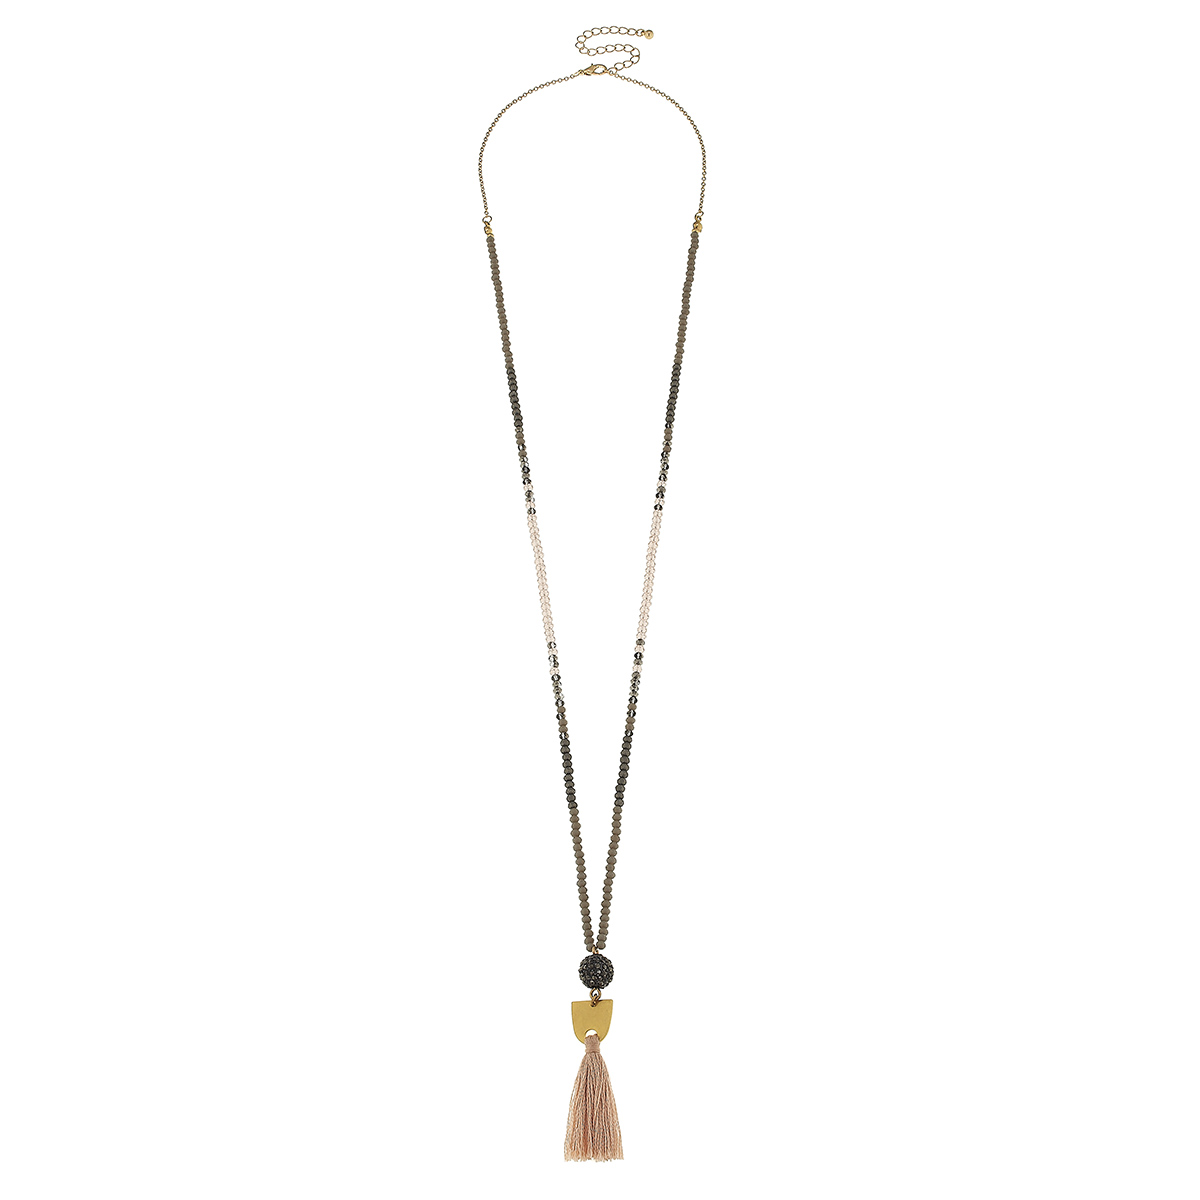 Ball and tassel drop necklace